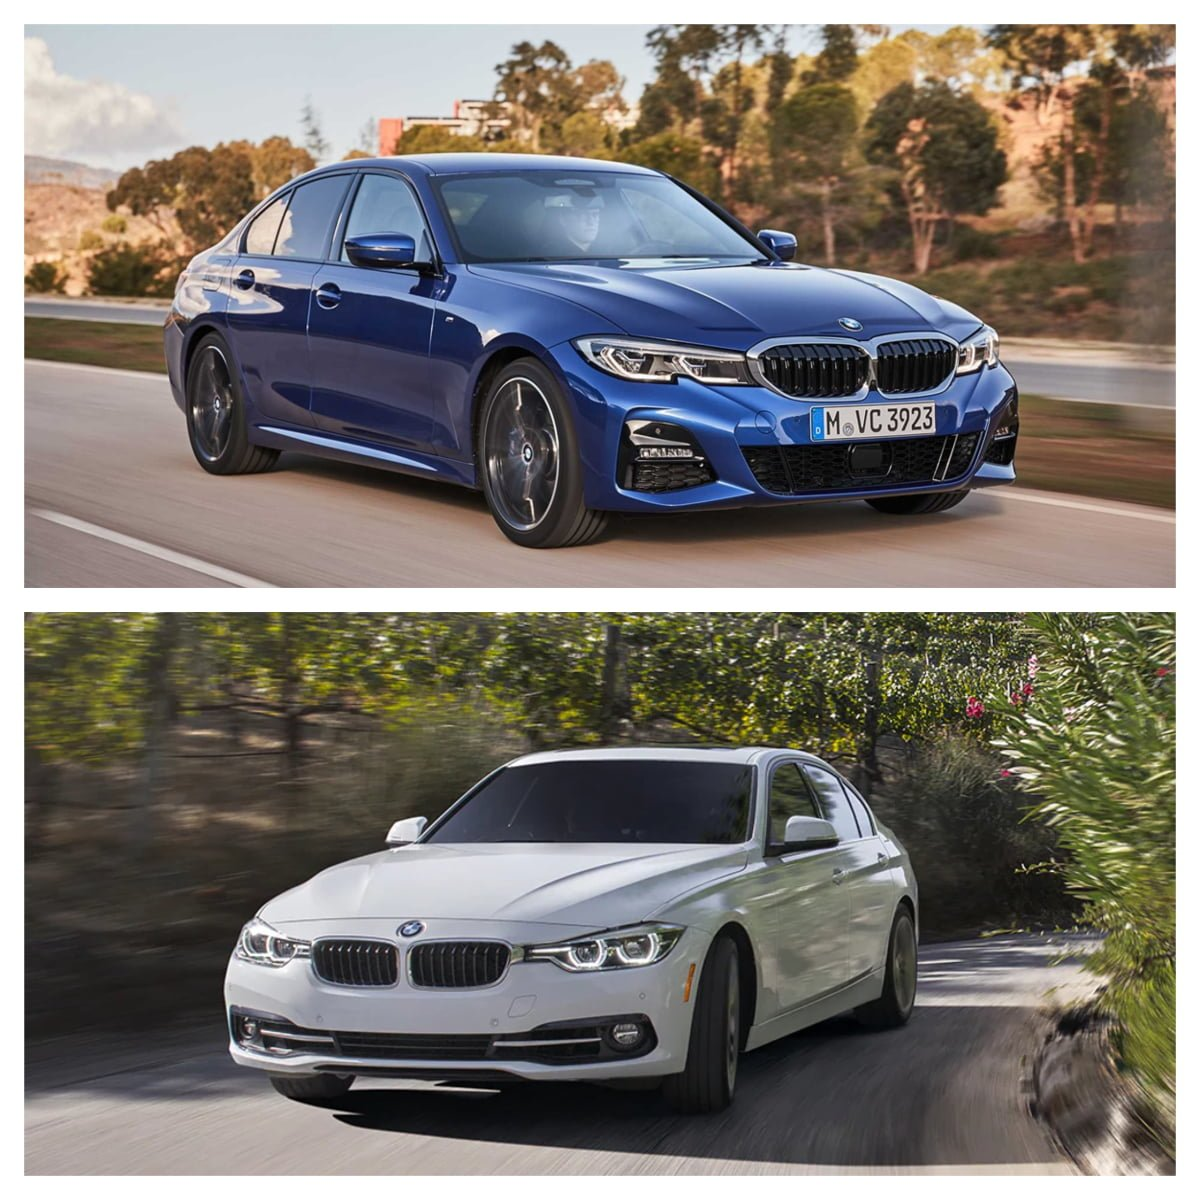 Bmw 3 Series Old Vs New What All Has Changed With The 7th Gen